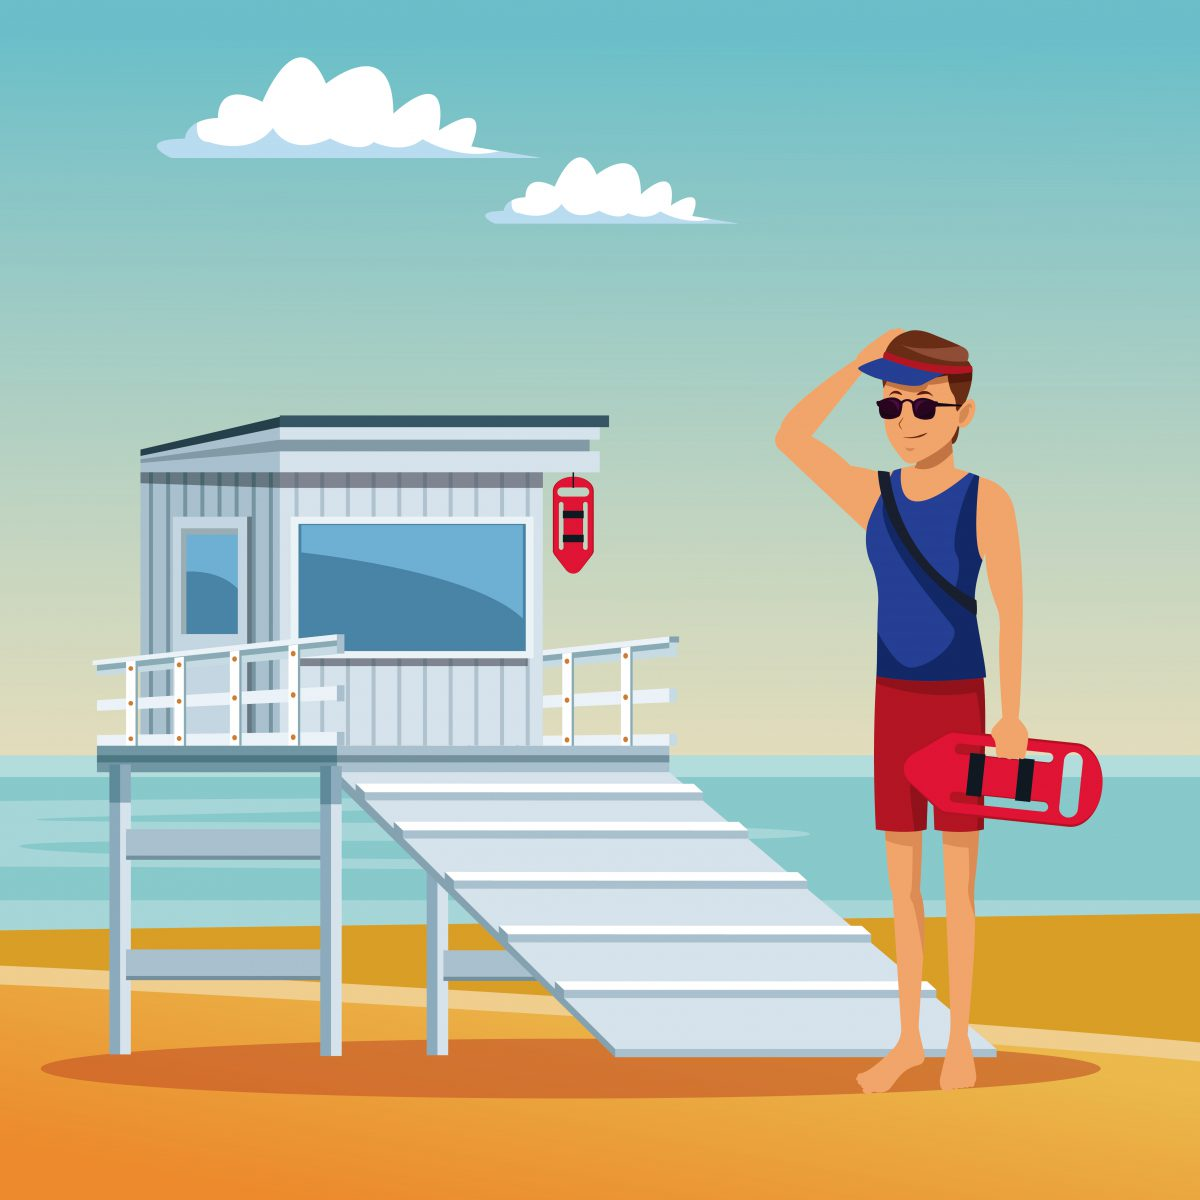 Lifeguard looking the beach summer cartoons vector illustration graphic design